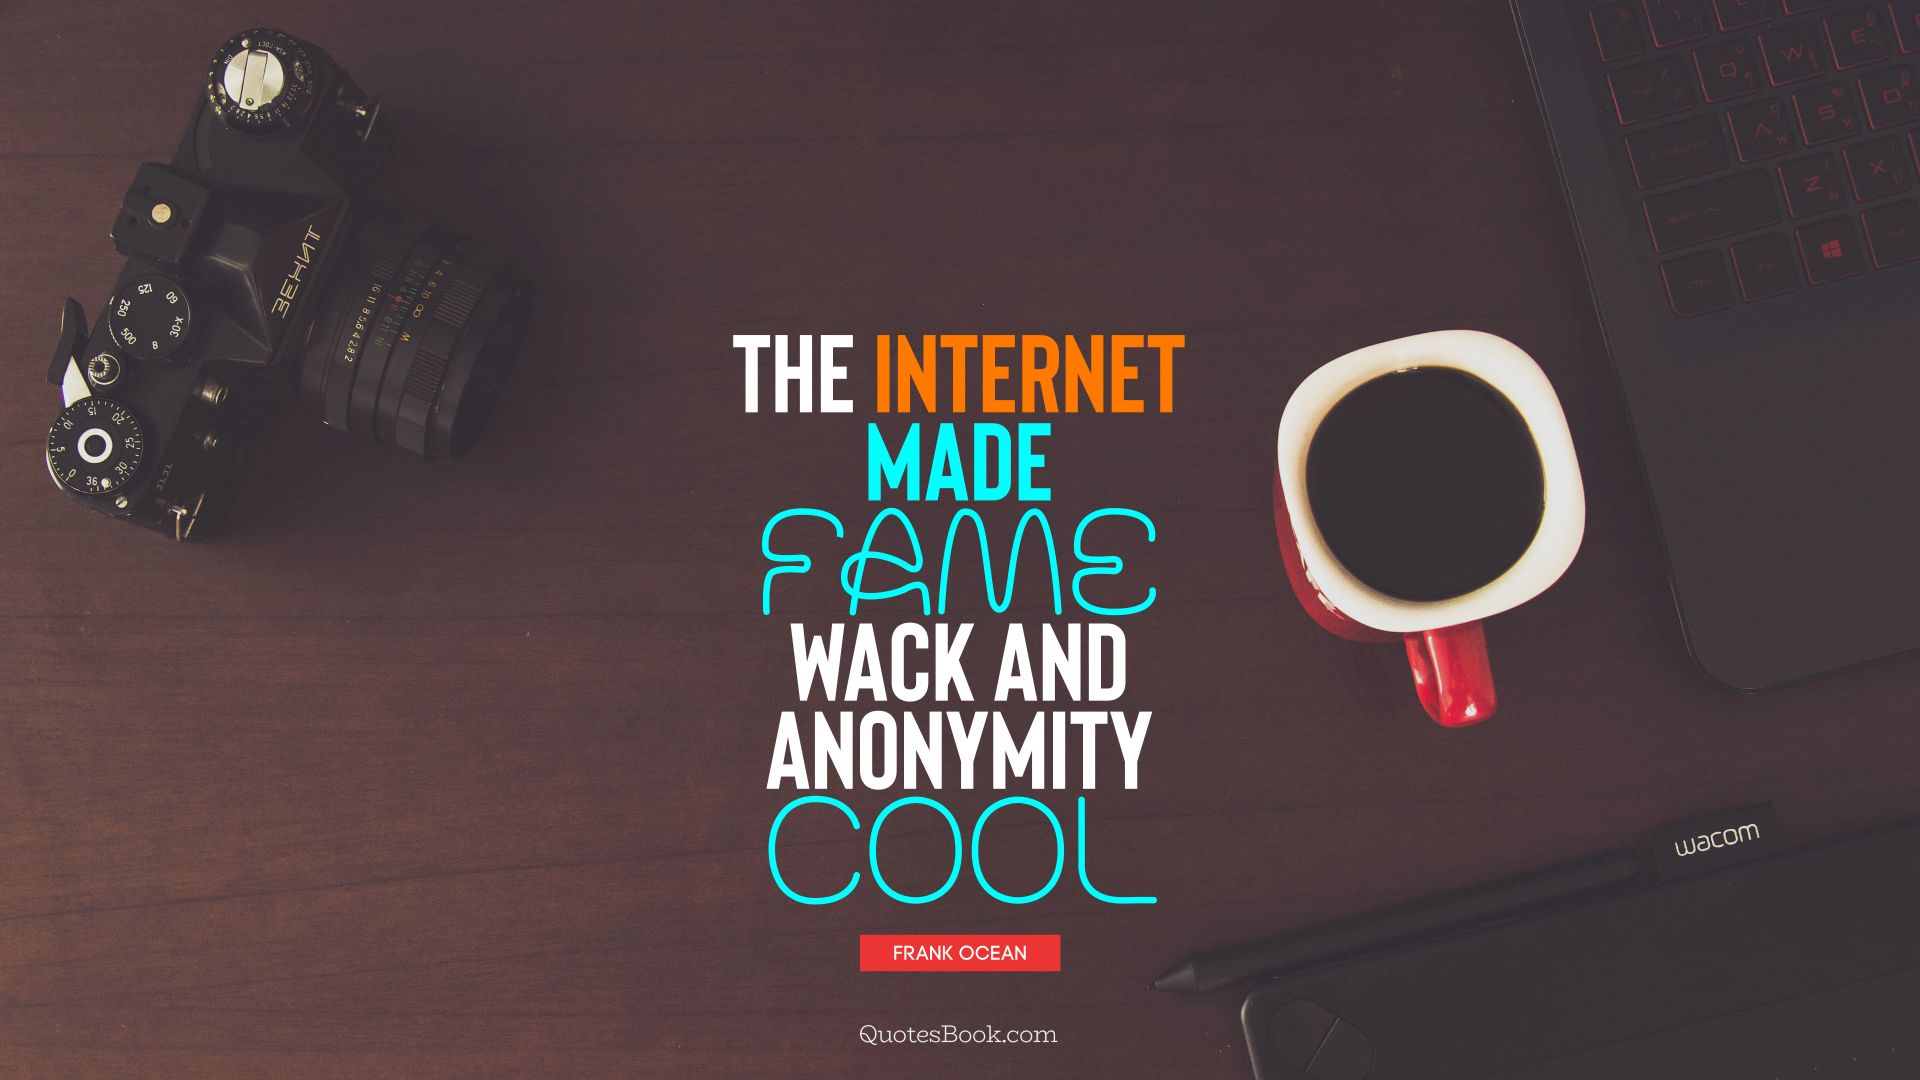 The Internet made fame wack and anonymity cool. - Quote by Frank Ocean